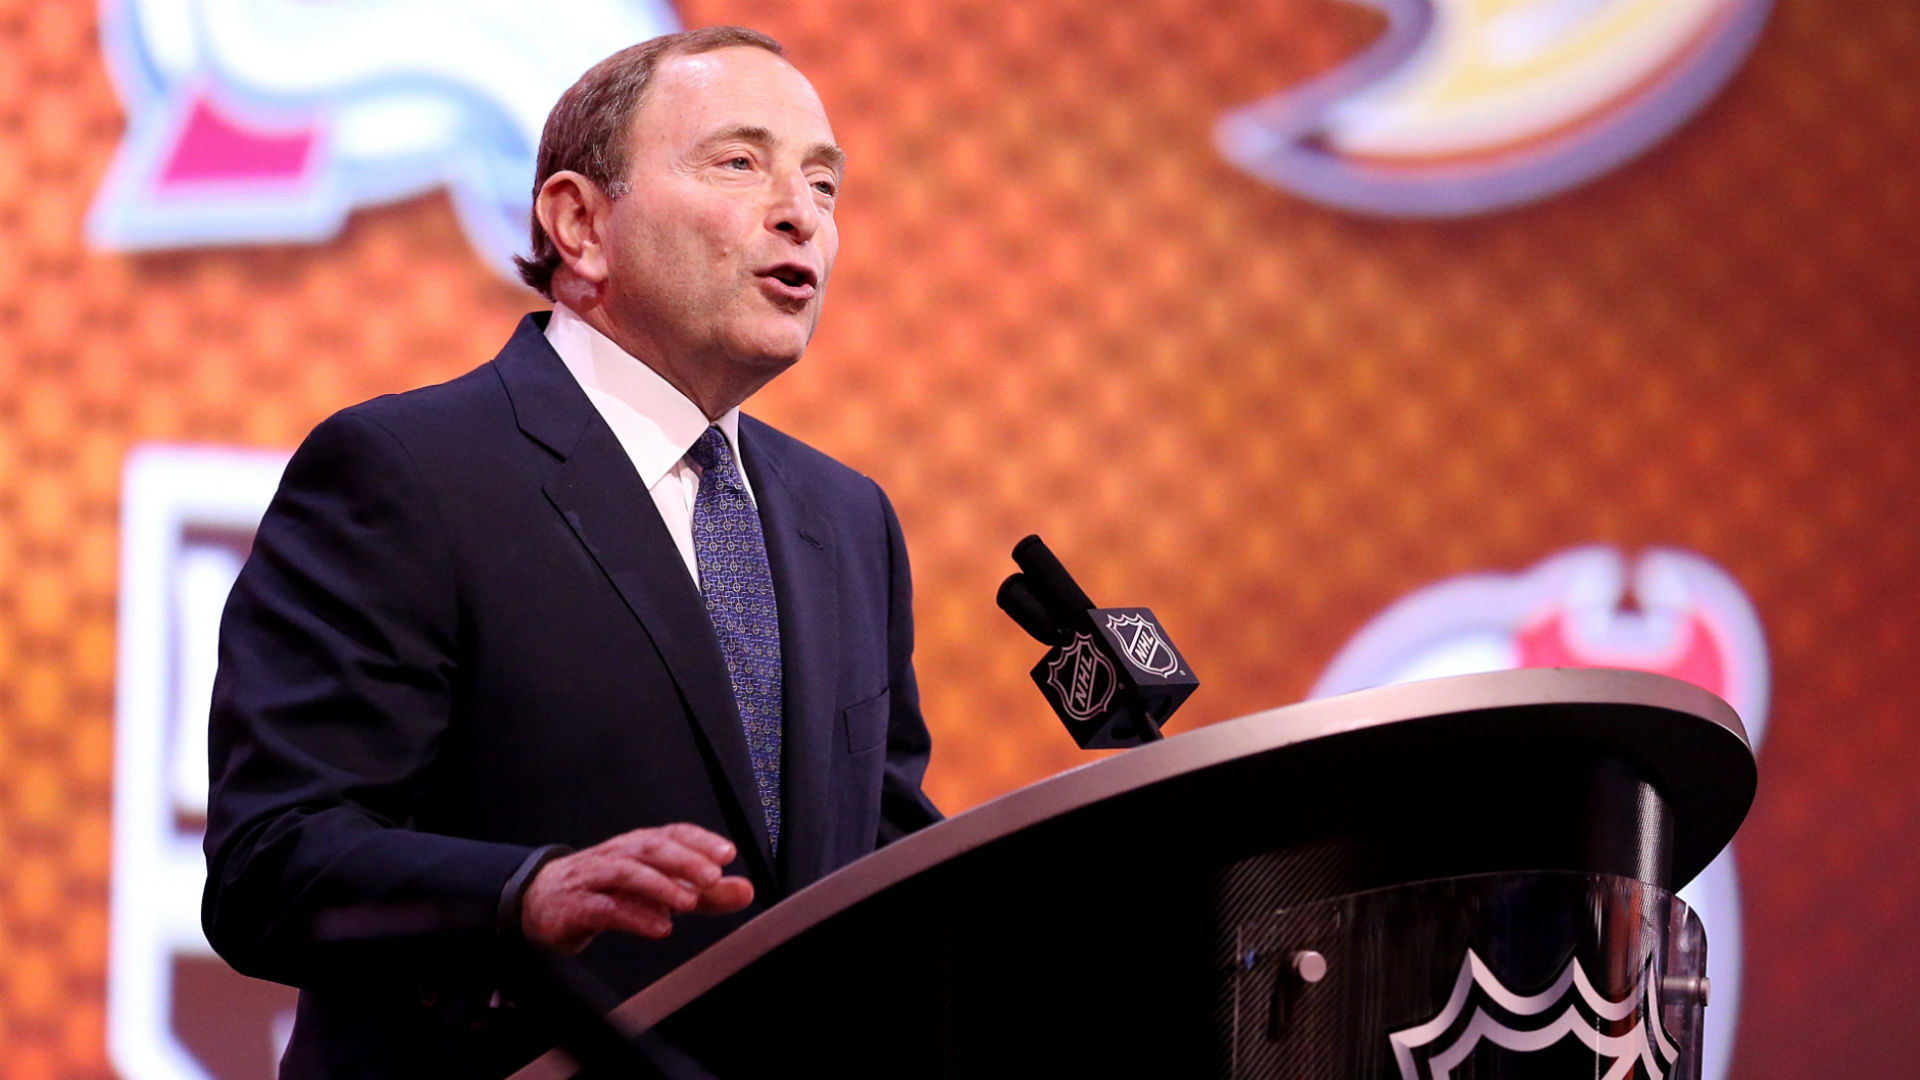 bettman-gary-121014-usnews-getty-ftr